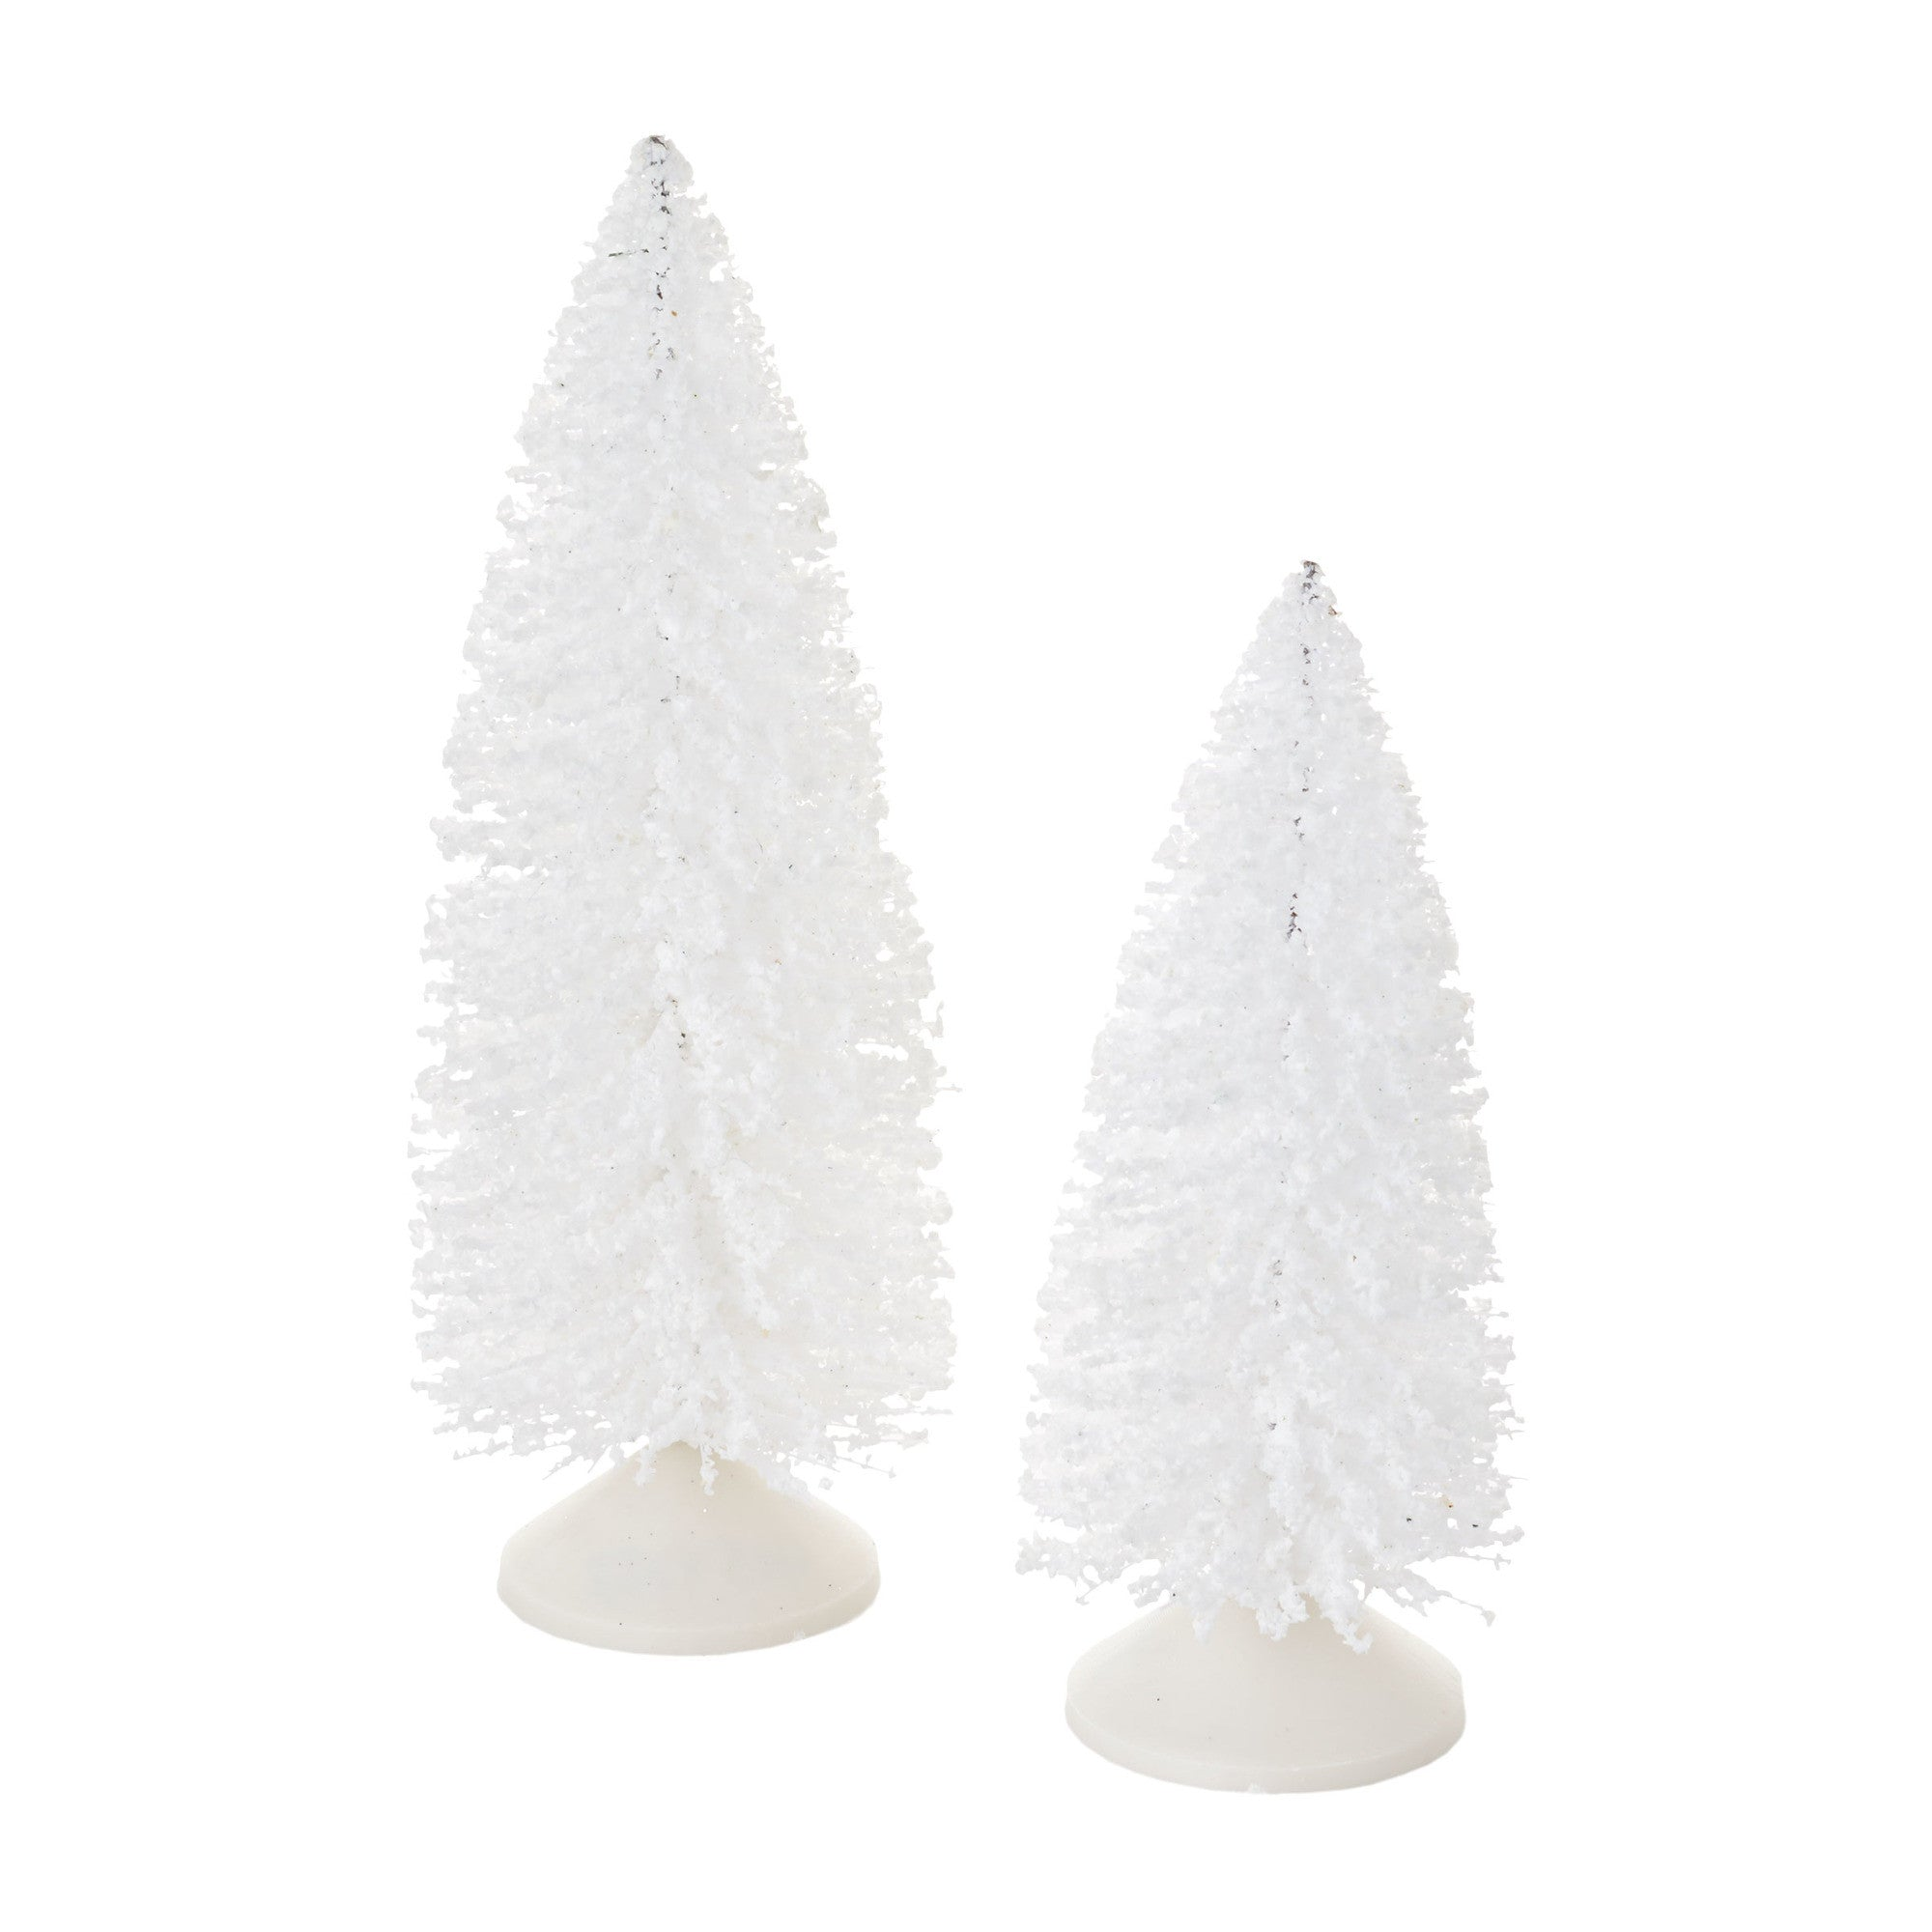 Snowy White Sisal Trees for decorating a Christmas village